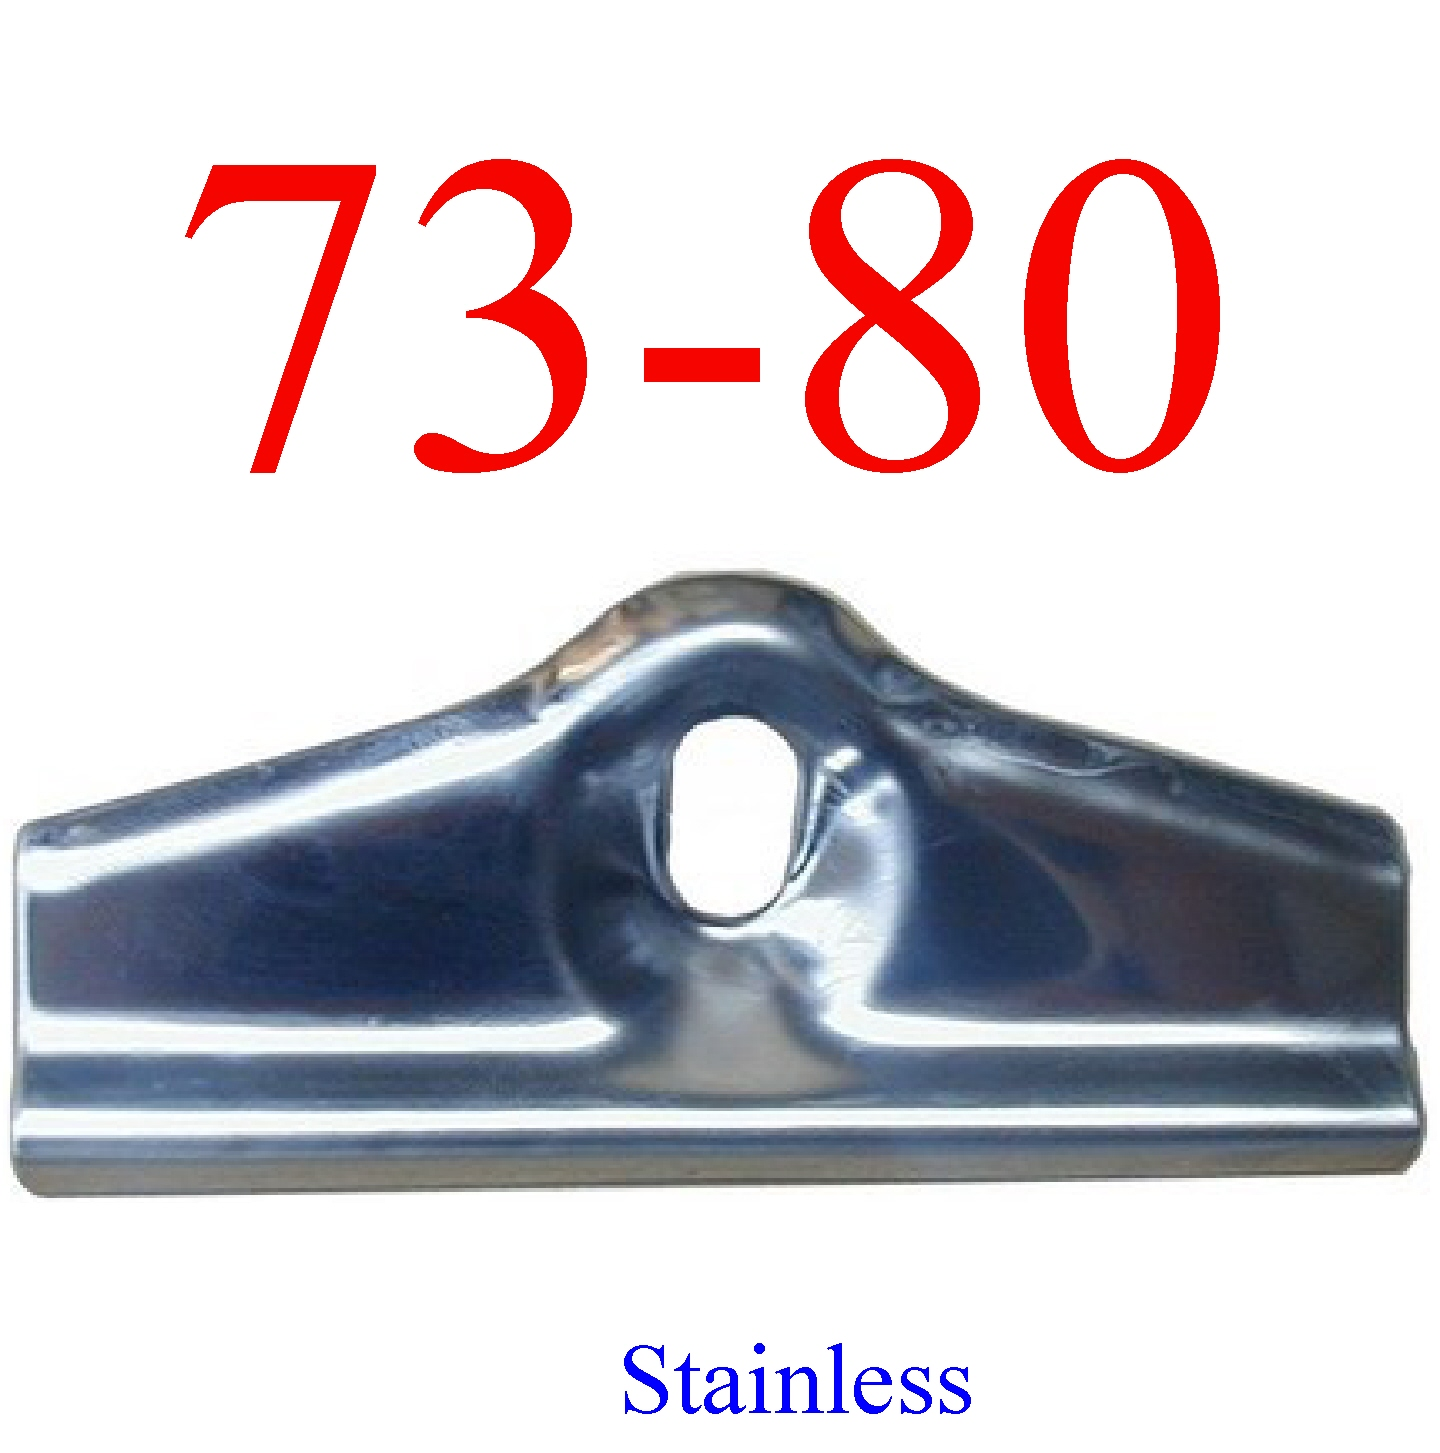 73-80 Stainless Chevy Battery Hold Down Bracket